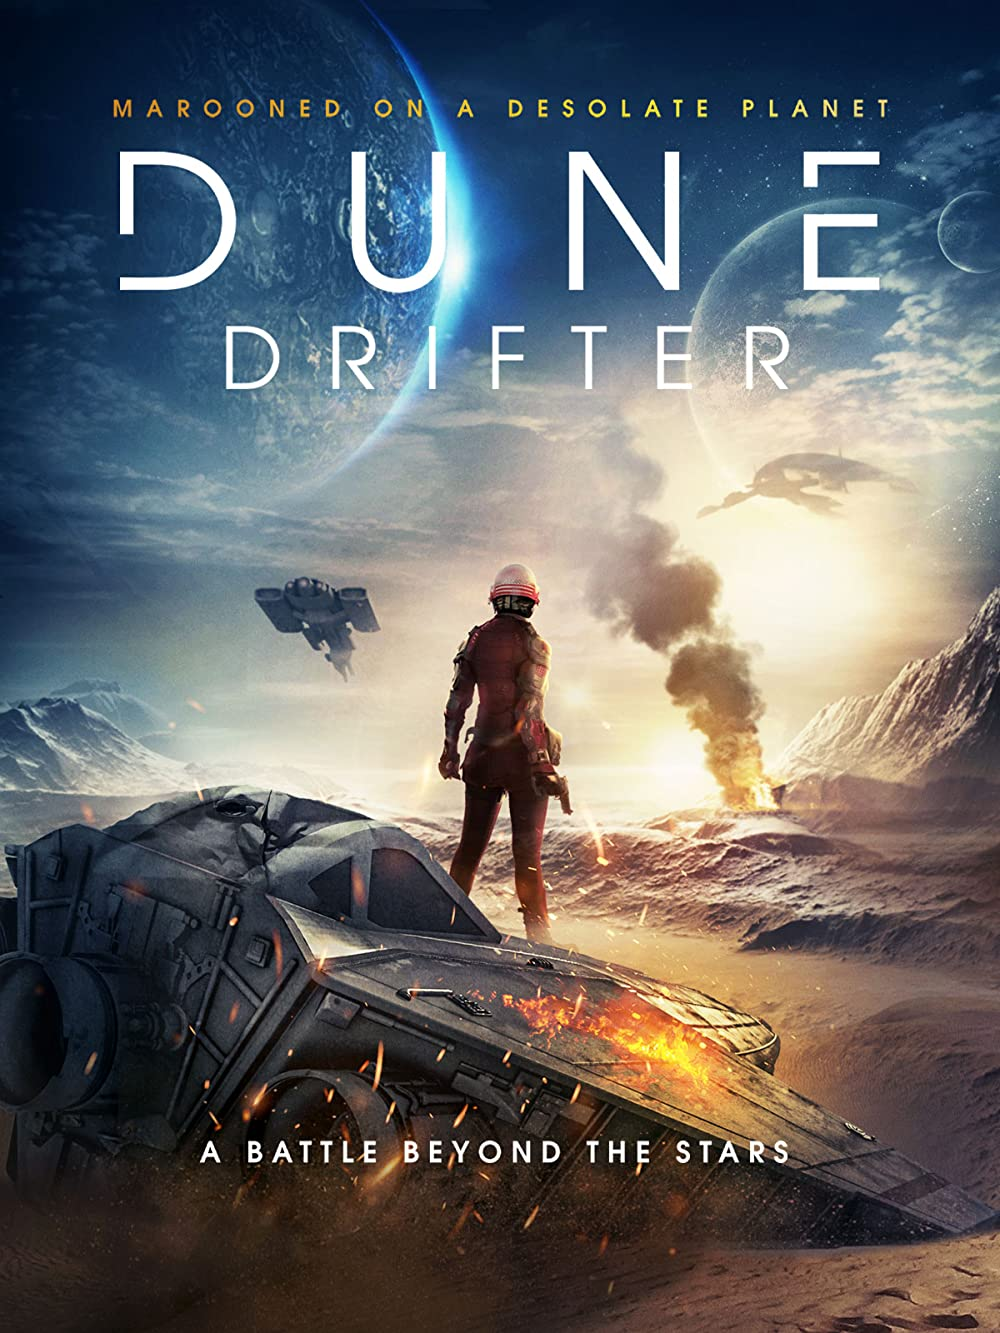 Dune Drifter 2020 English Full Movie 280MB HDRip Download